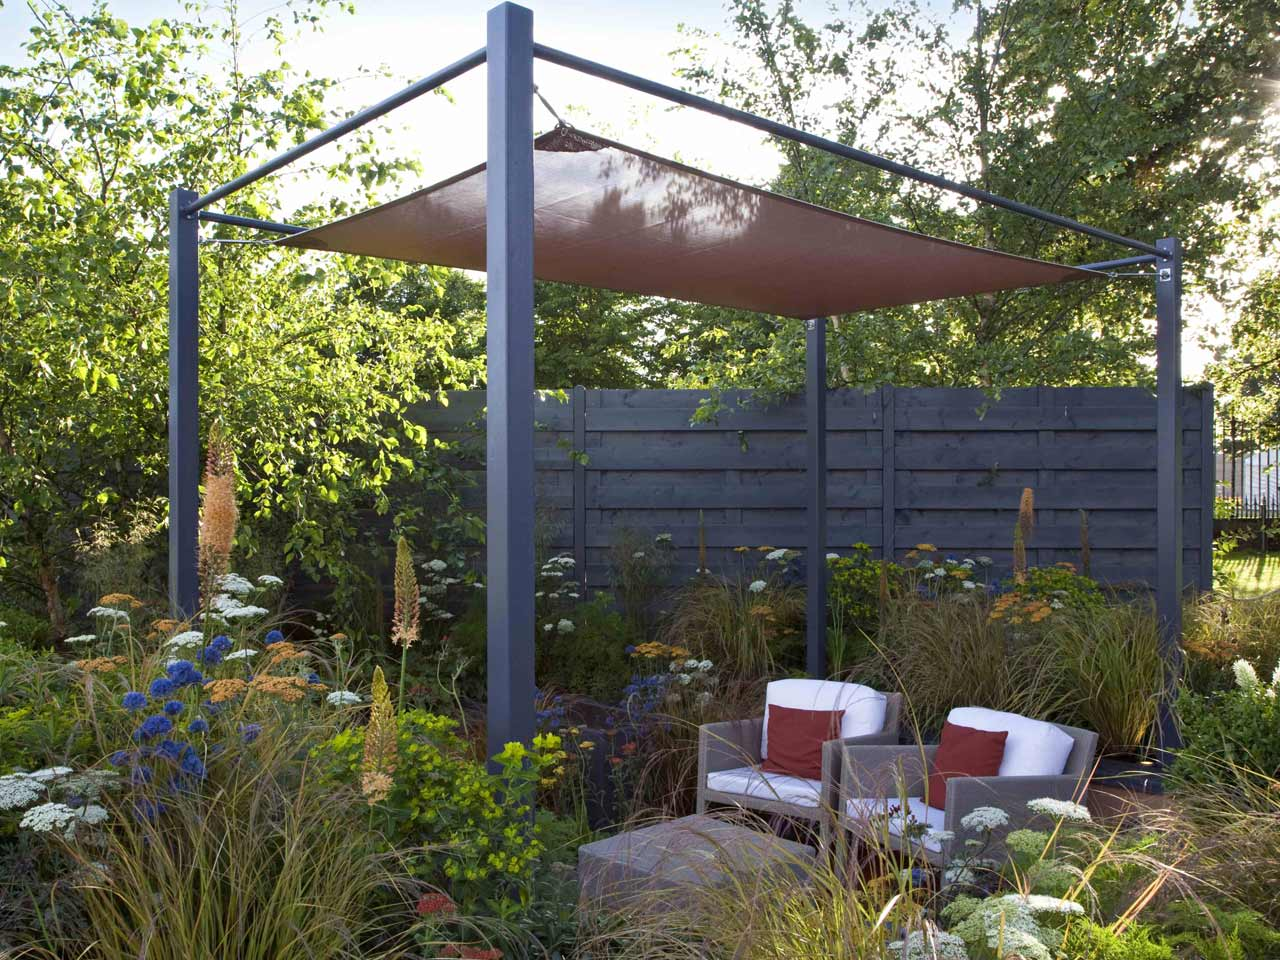 /contentlibrary/saga/publishing/verticals/home-and-garden/gardening/garden-ideas/landscaping/mark-gregory-landscape-design/design-a-chelsea-style-show-garden-at-home-008-1280.jpg